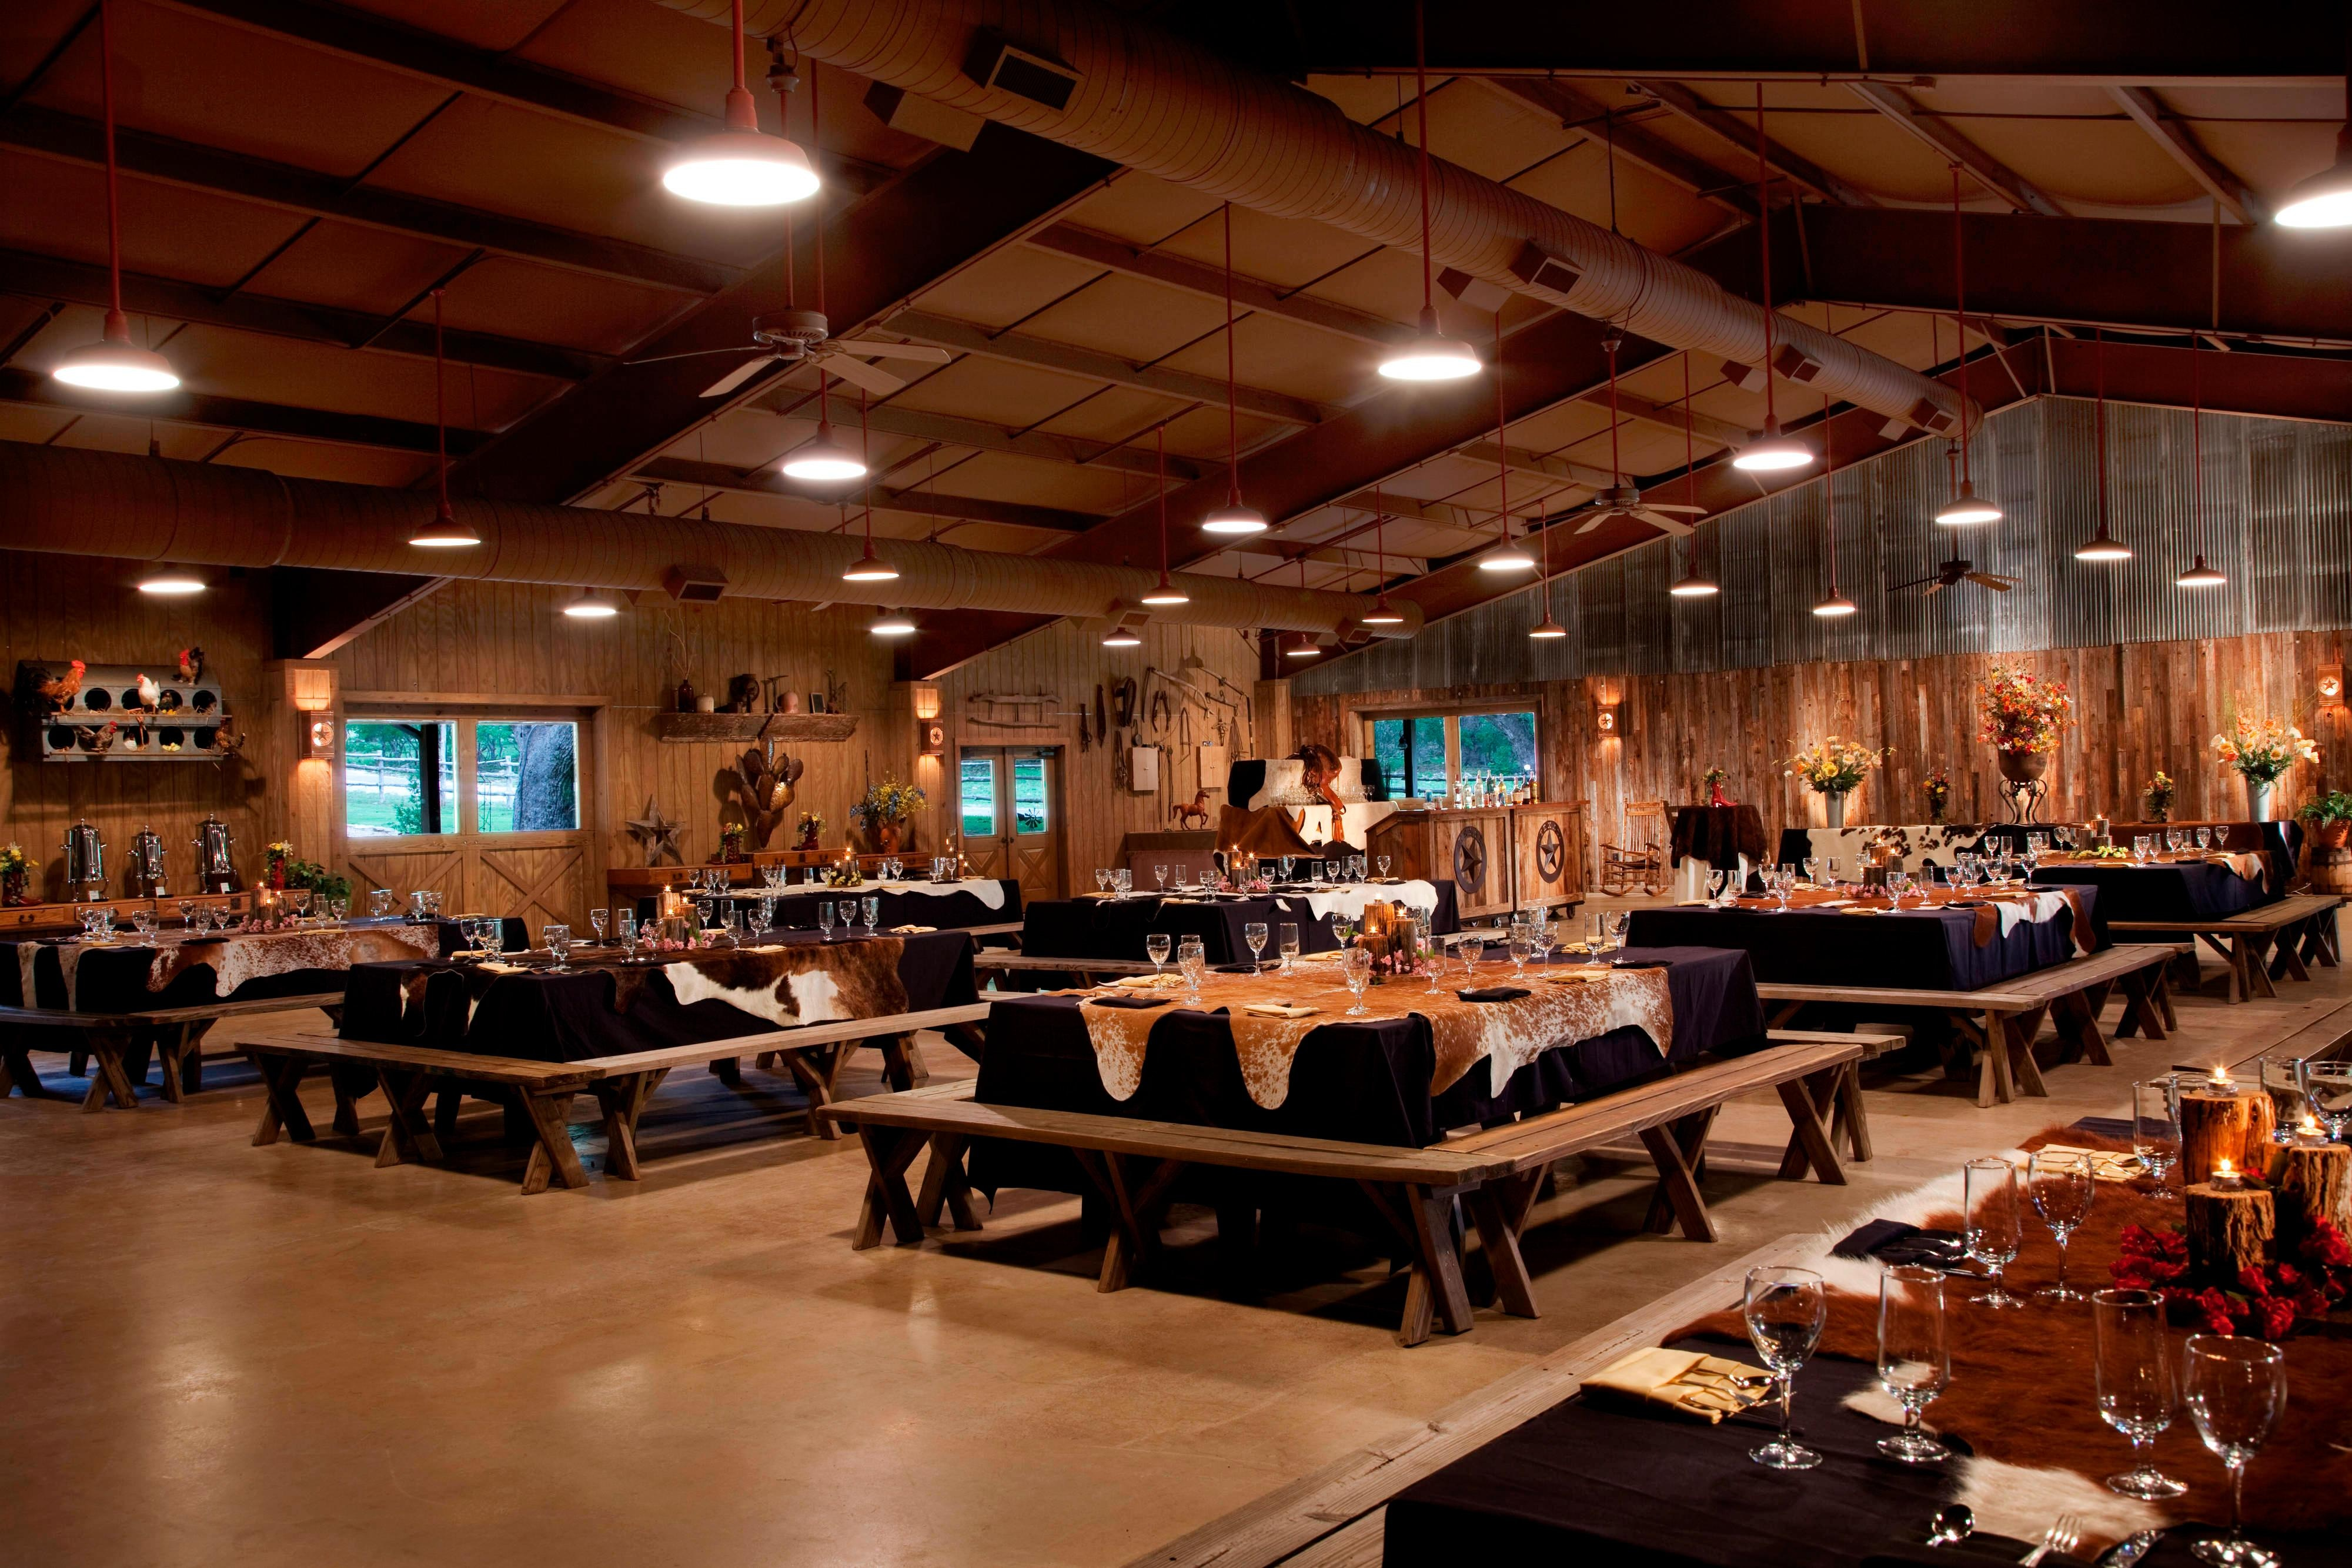 Knibbe Ranch Cowboy Dinner